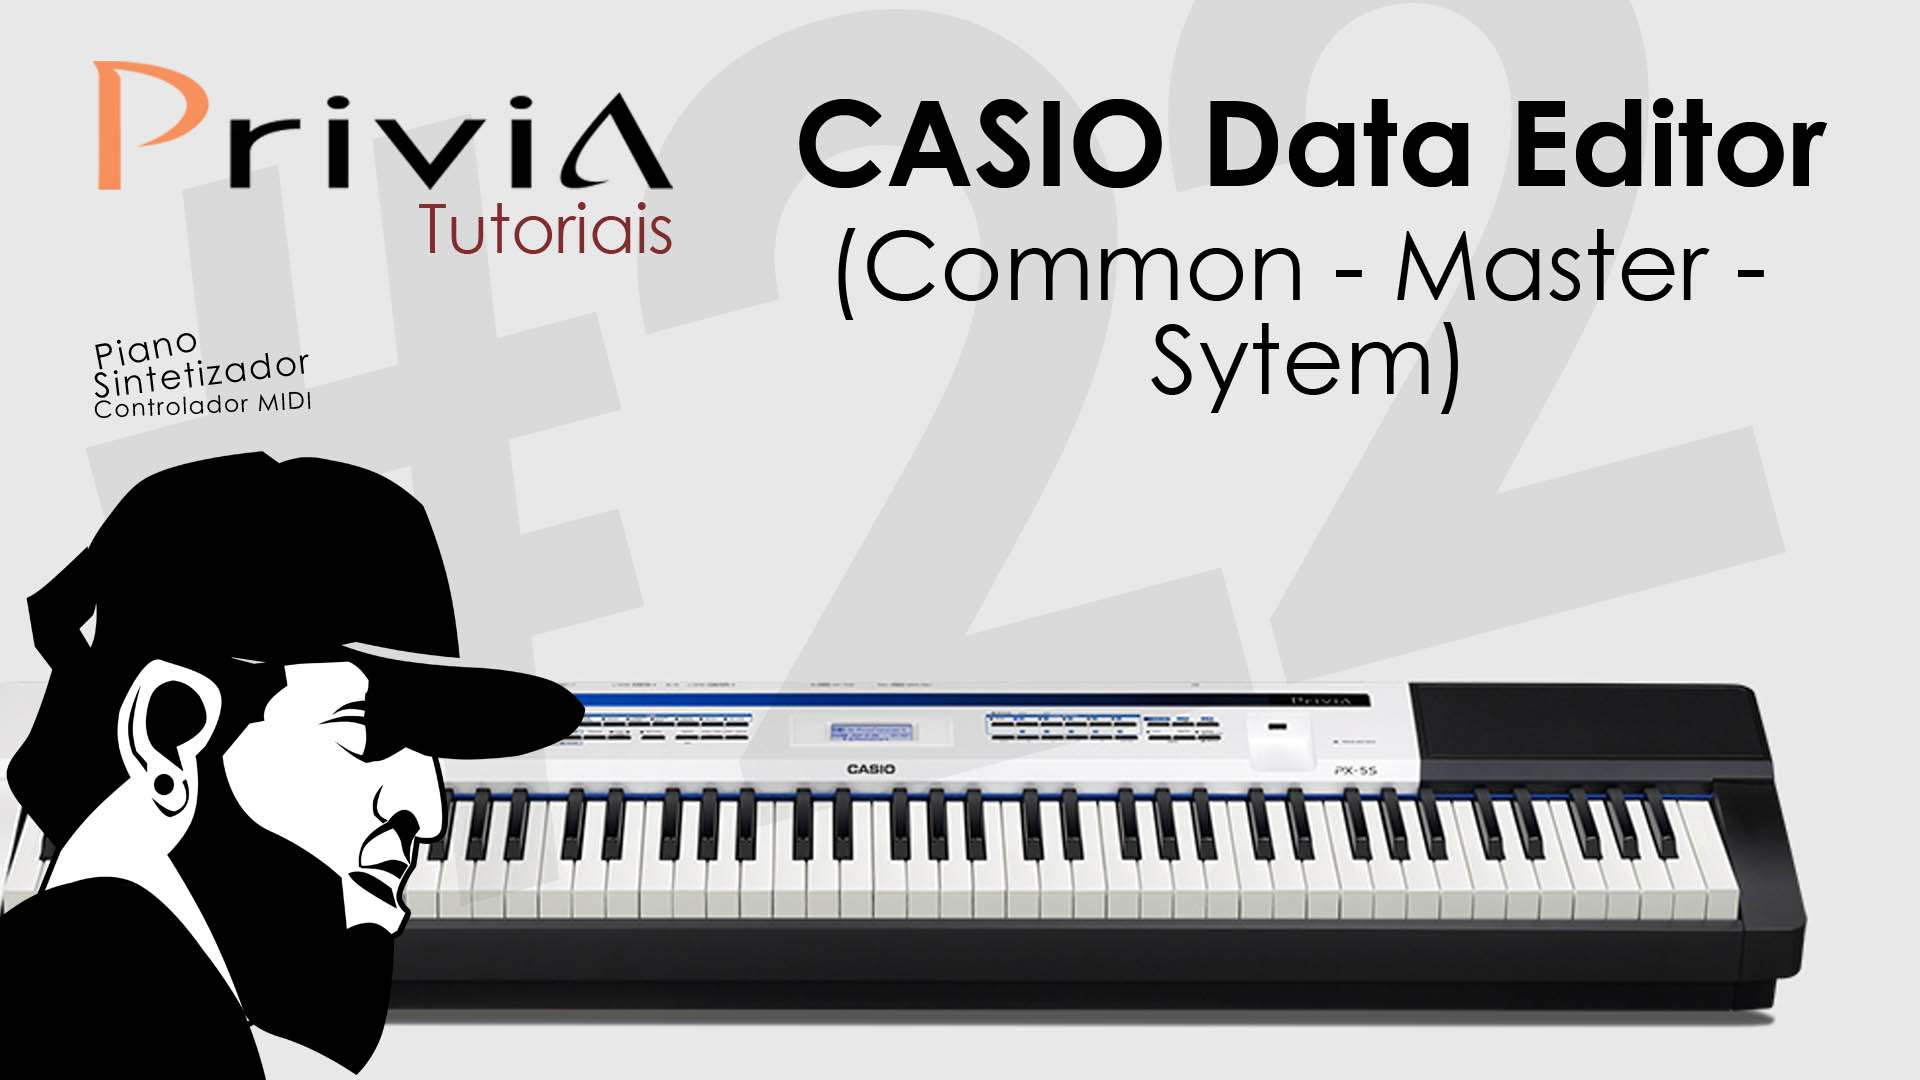 Como Utilizar o Software Editor Casio Data Editor For PX-5S? (Common e System)